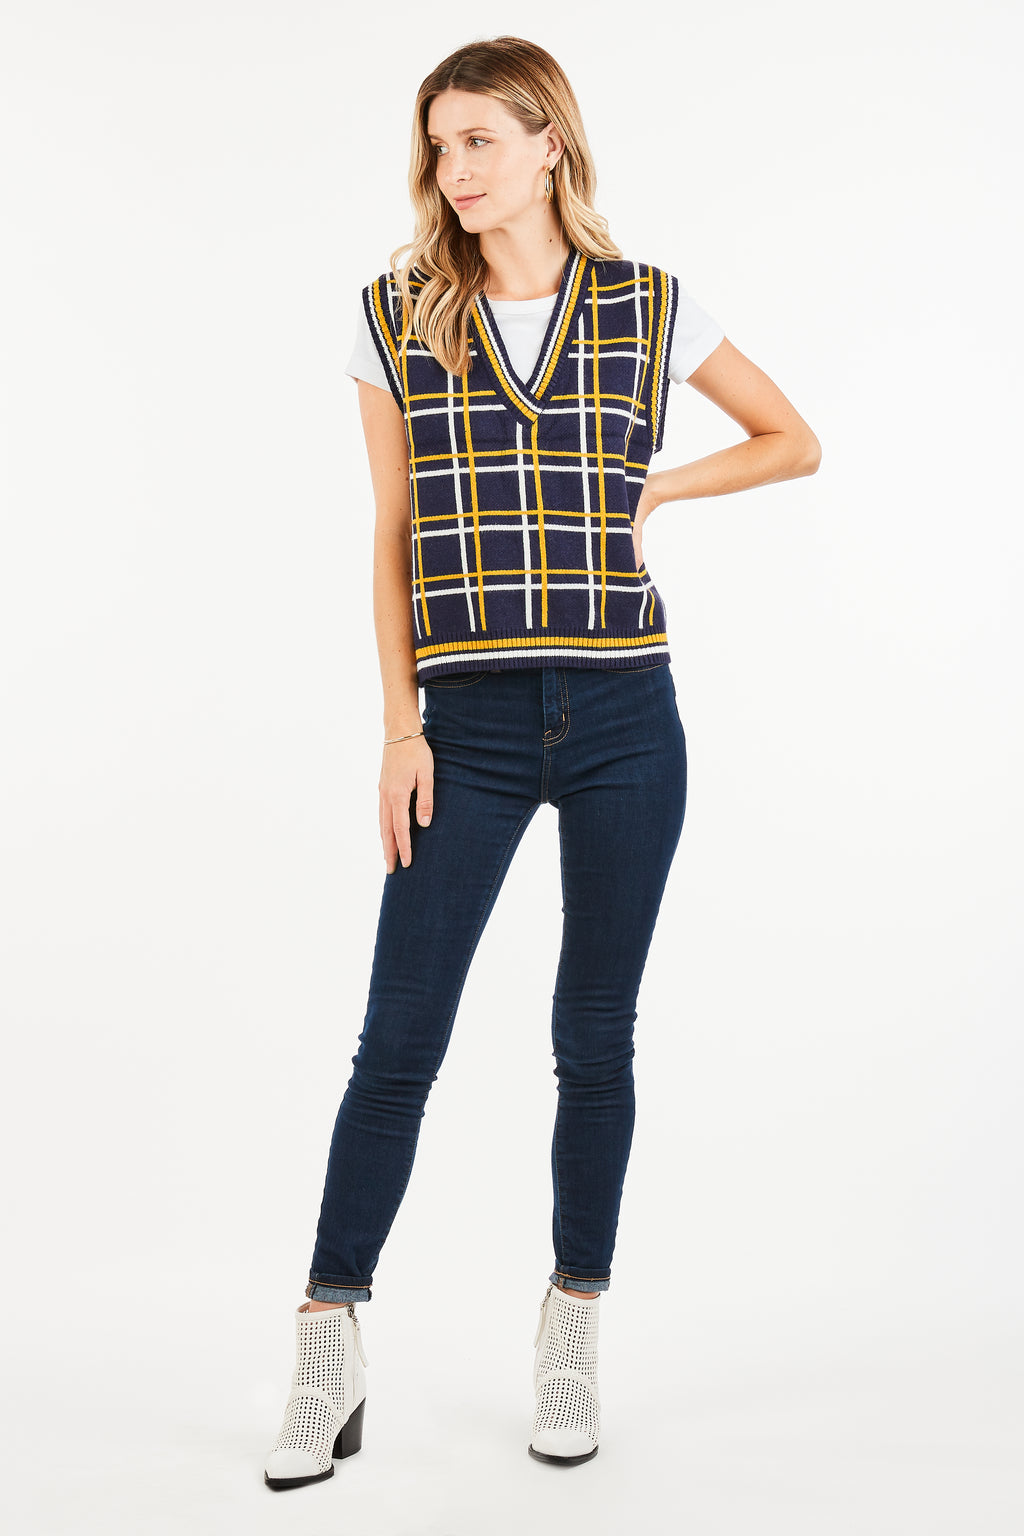 VICTORIA CHECKERED SWEATER VEST